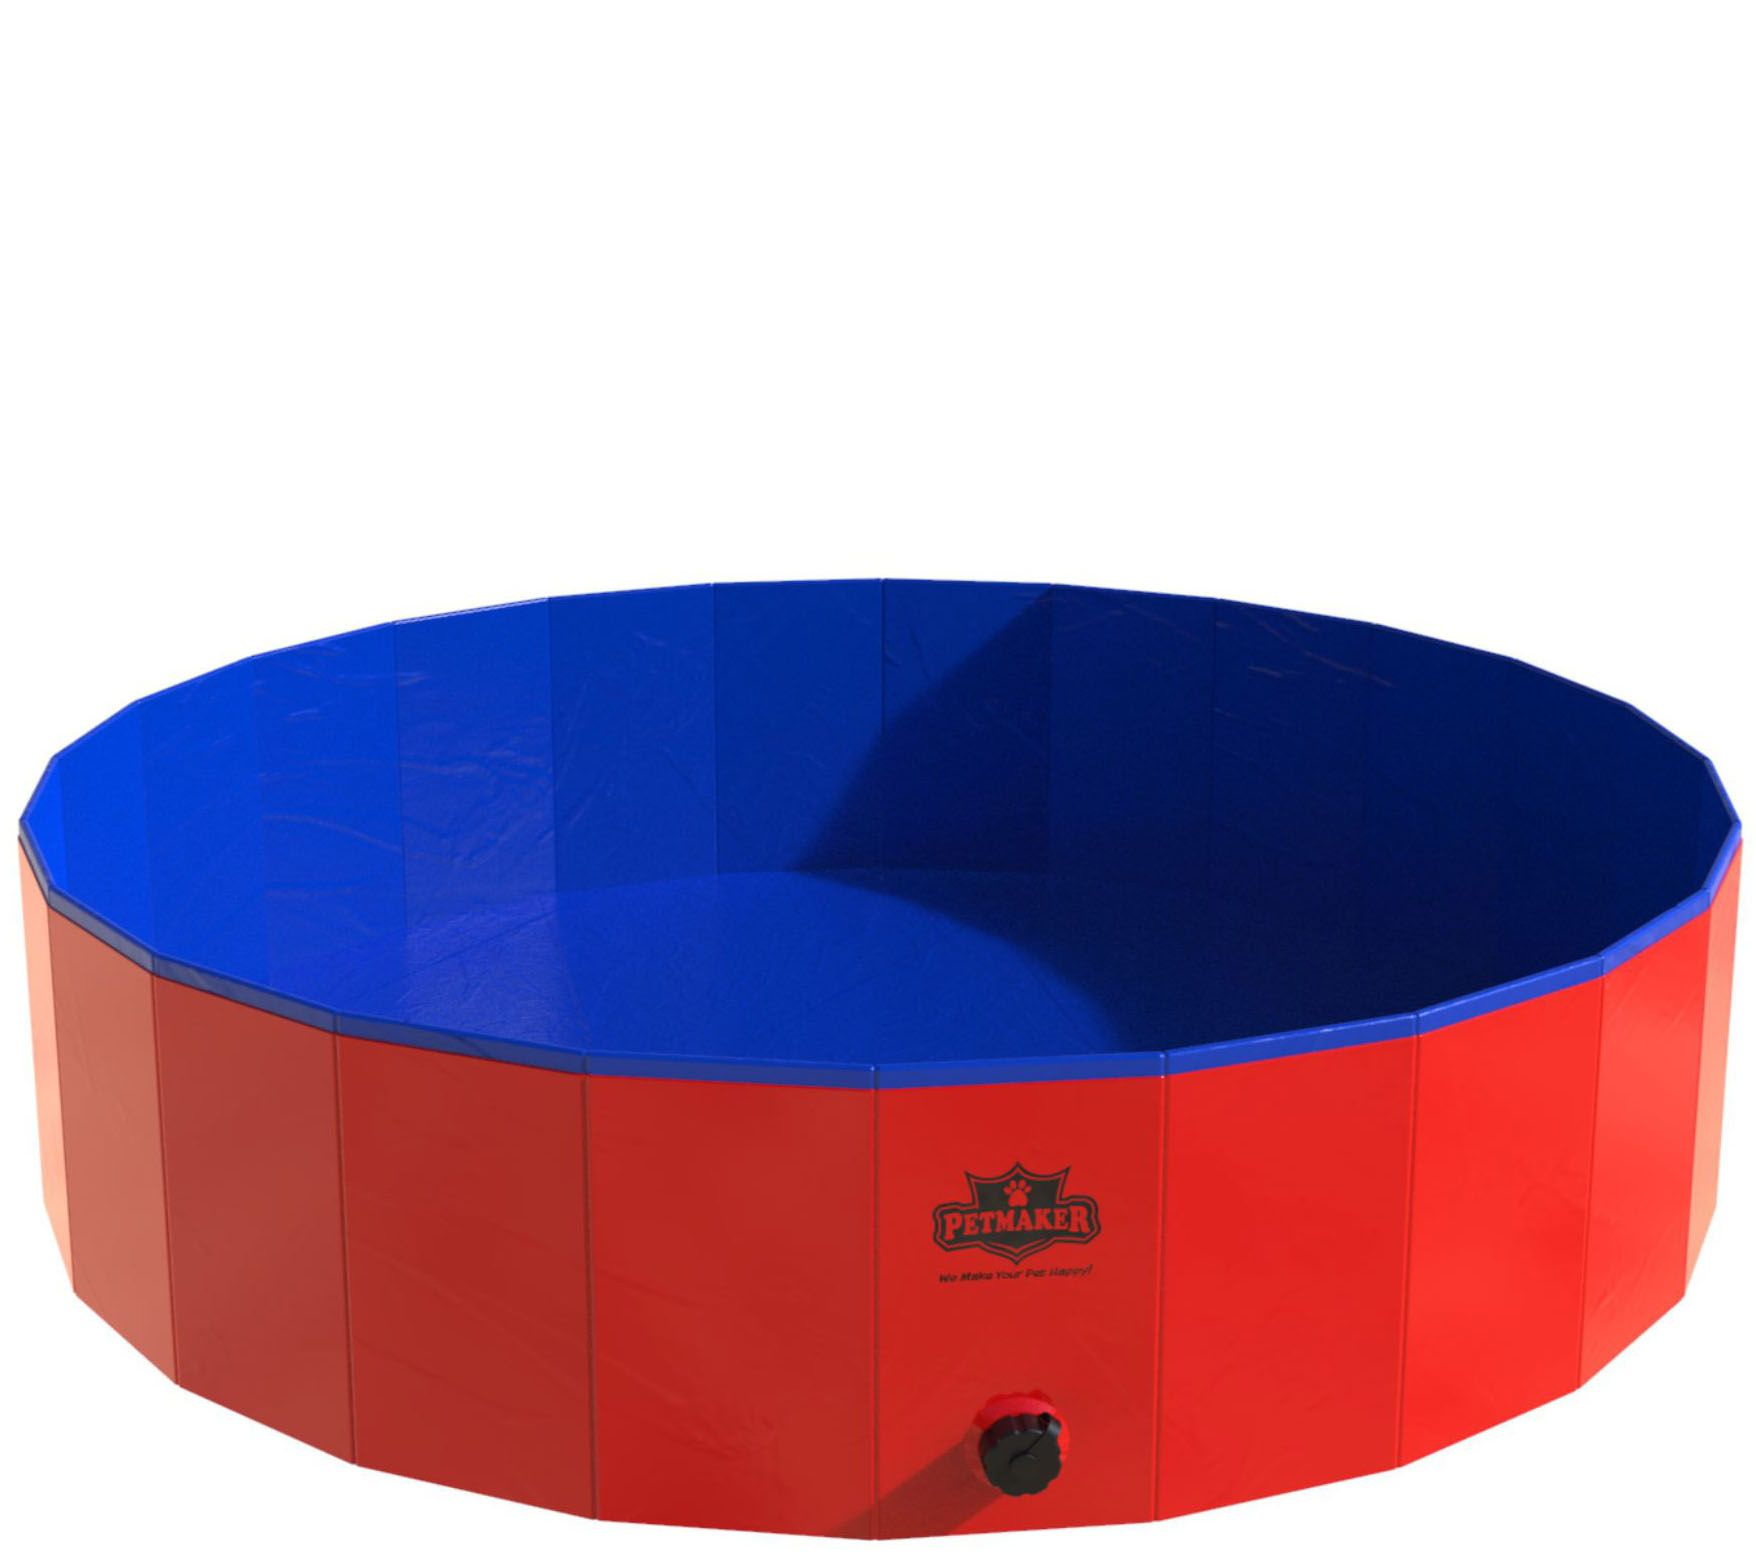 PETMAKER Foldable Pet Pool and Bathing Tub withCarrying Bag — QVC.com